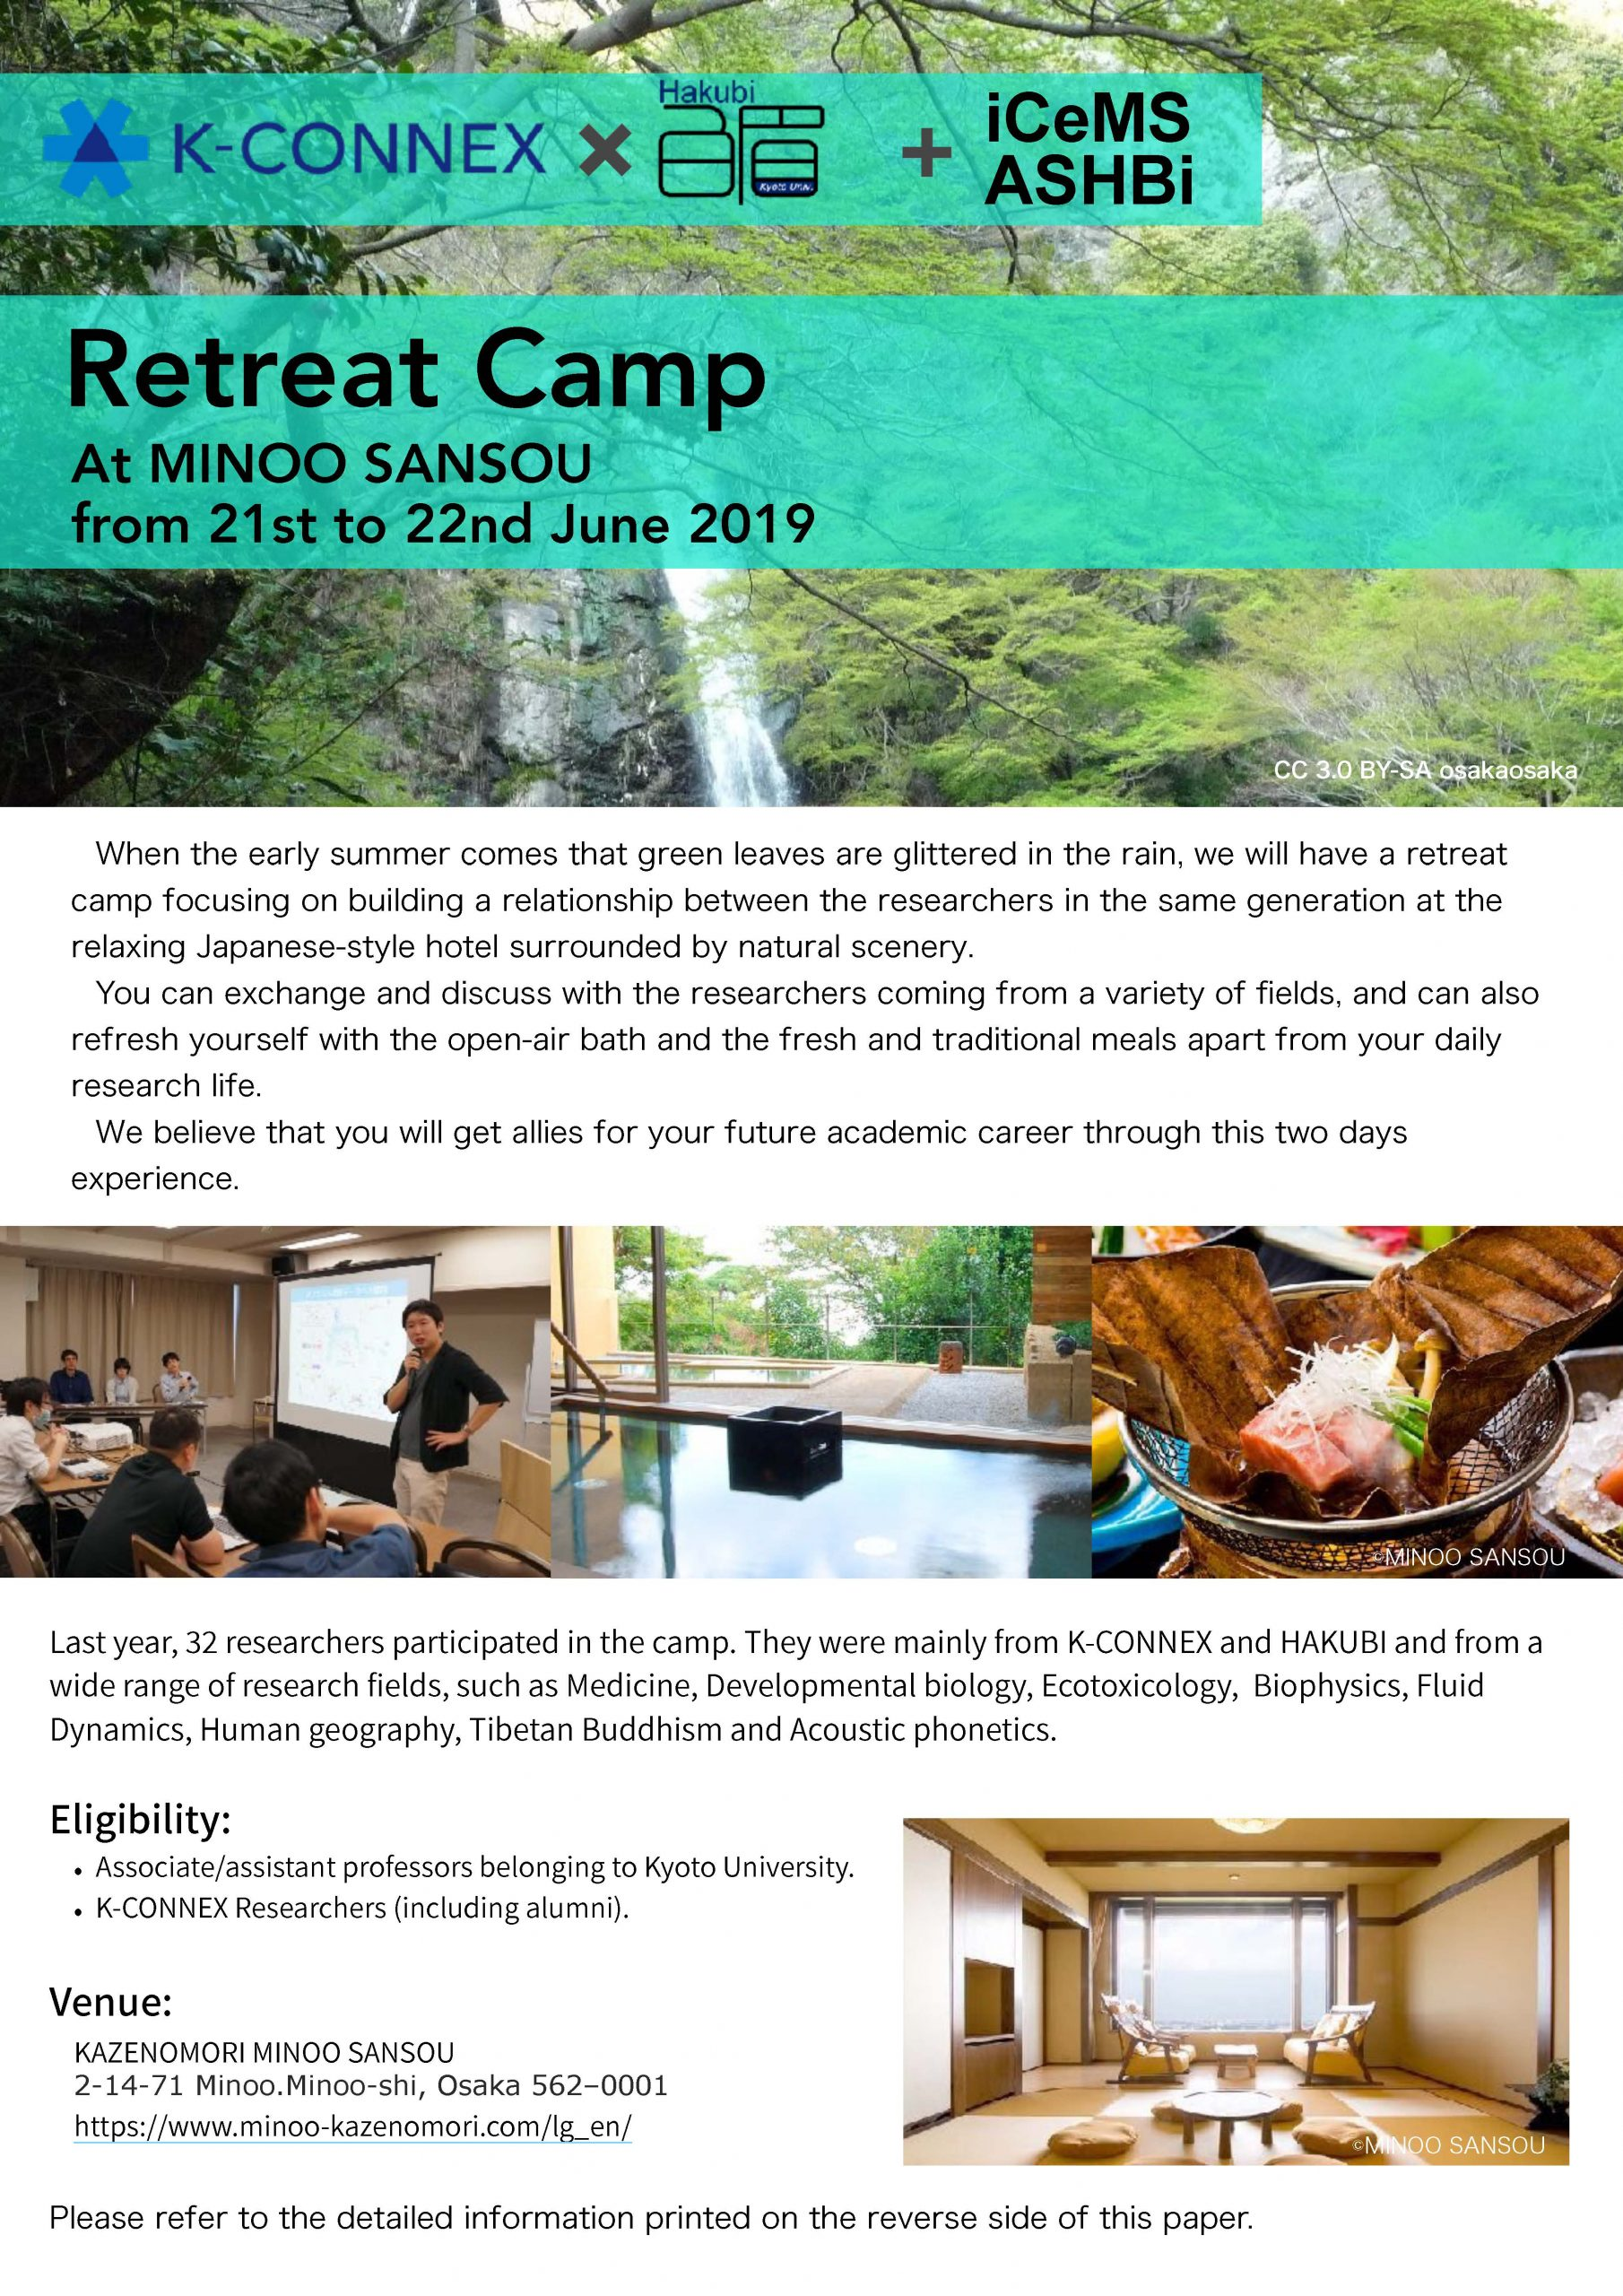 Retreat Camp for Young Researchers